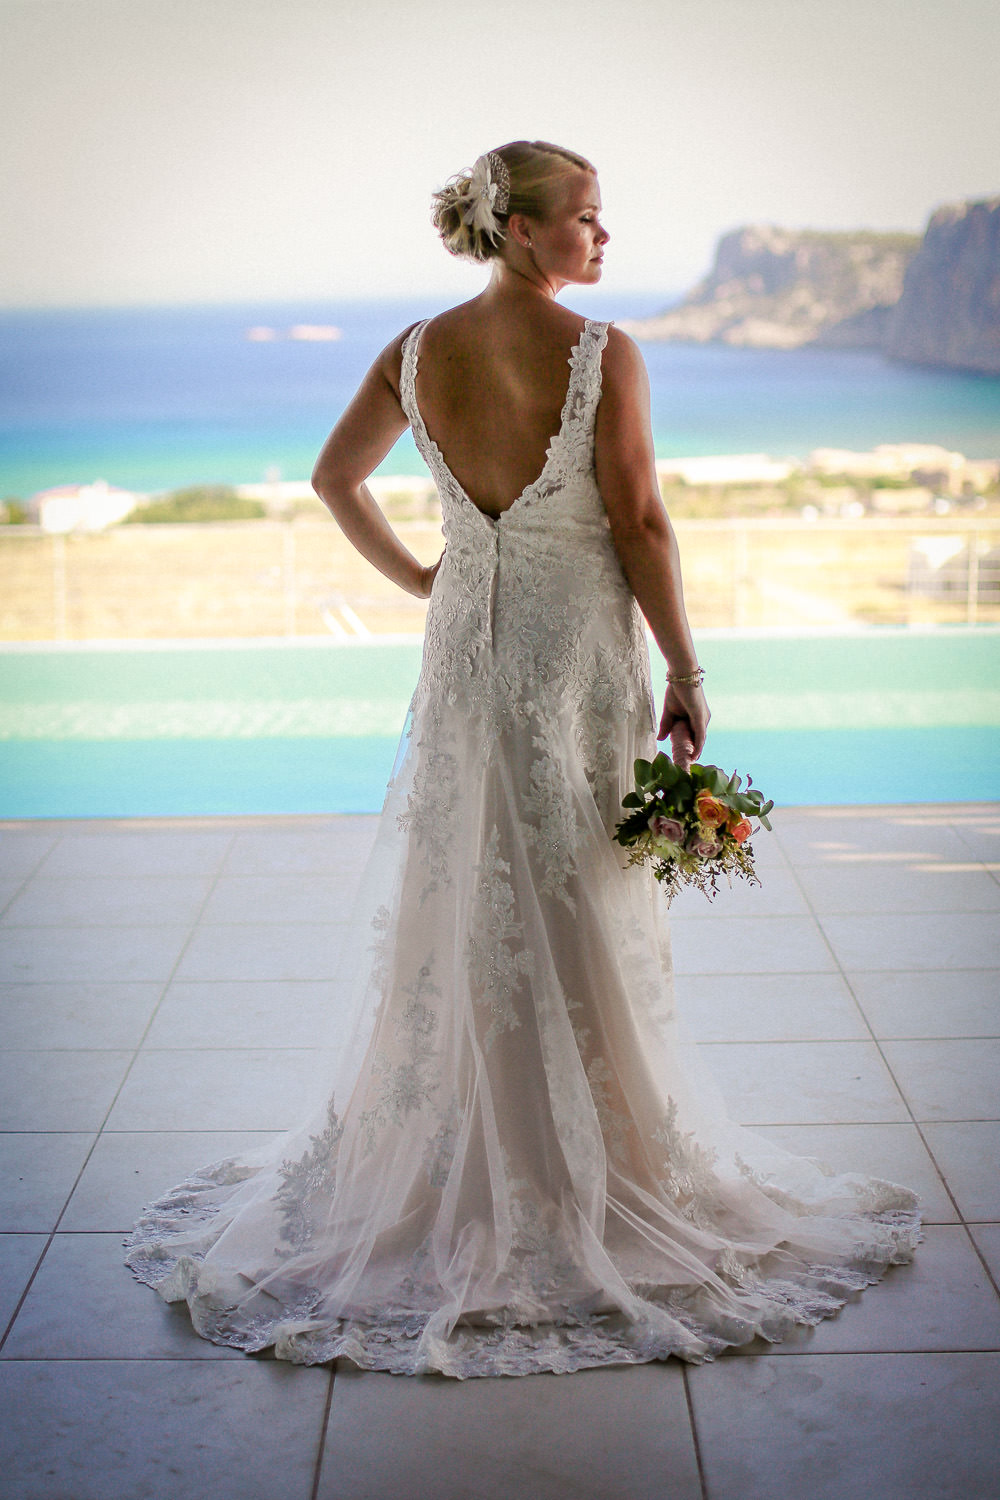 Lindos wedding photography, back of brides dress with view of ocean